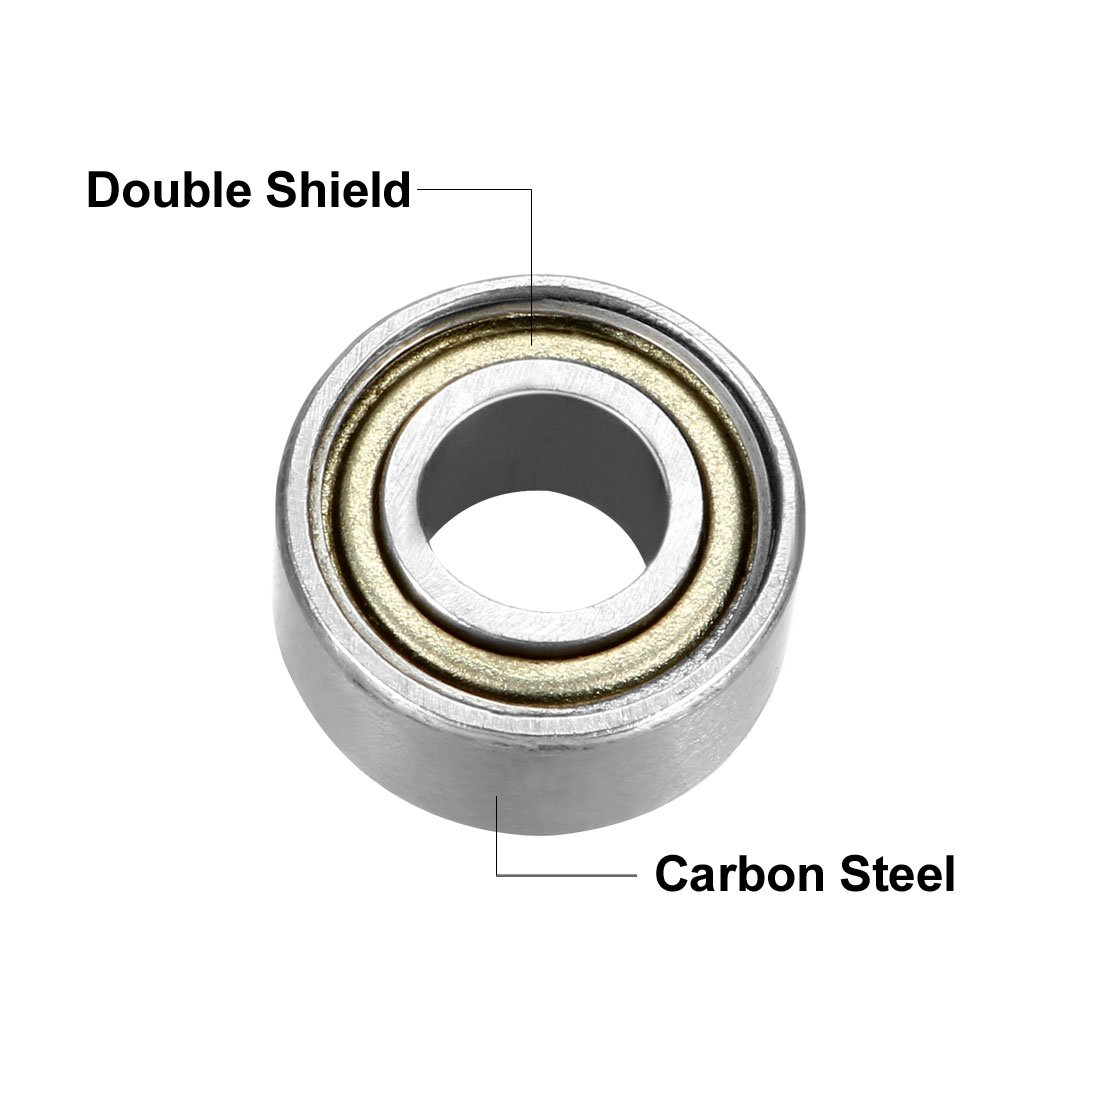 Pack of 10 3mm x 8mm x 4mm Carbon Steel Bearings sourcing map 693ZZ Deep Groove Ball Bearing Double Shield 693-2Z 2080093